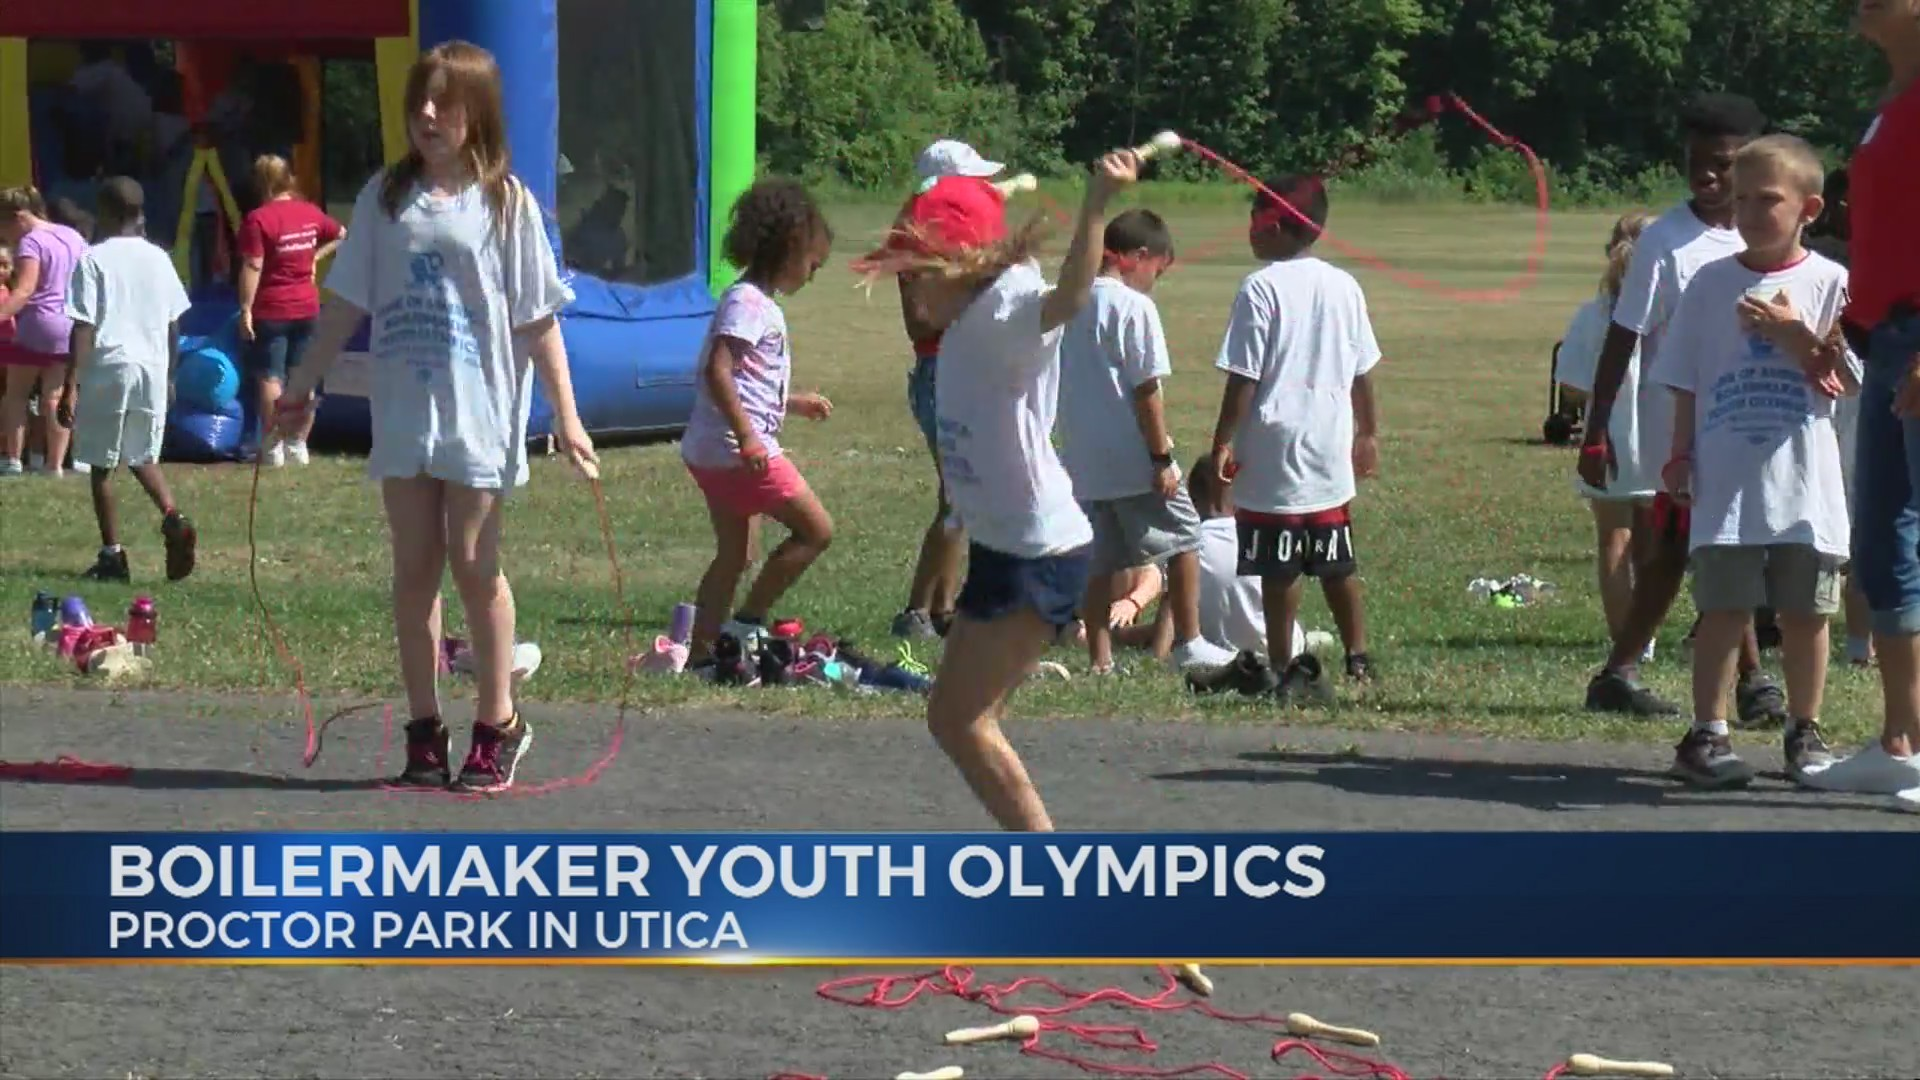 Boilermaker_Youth_Olympics_0_20180712224459